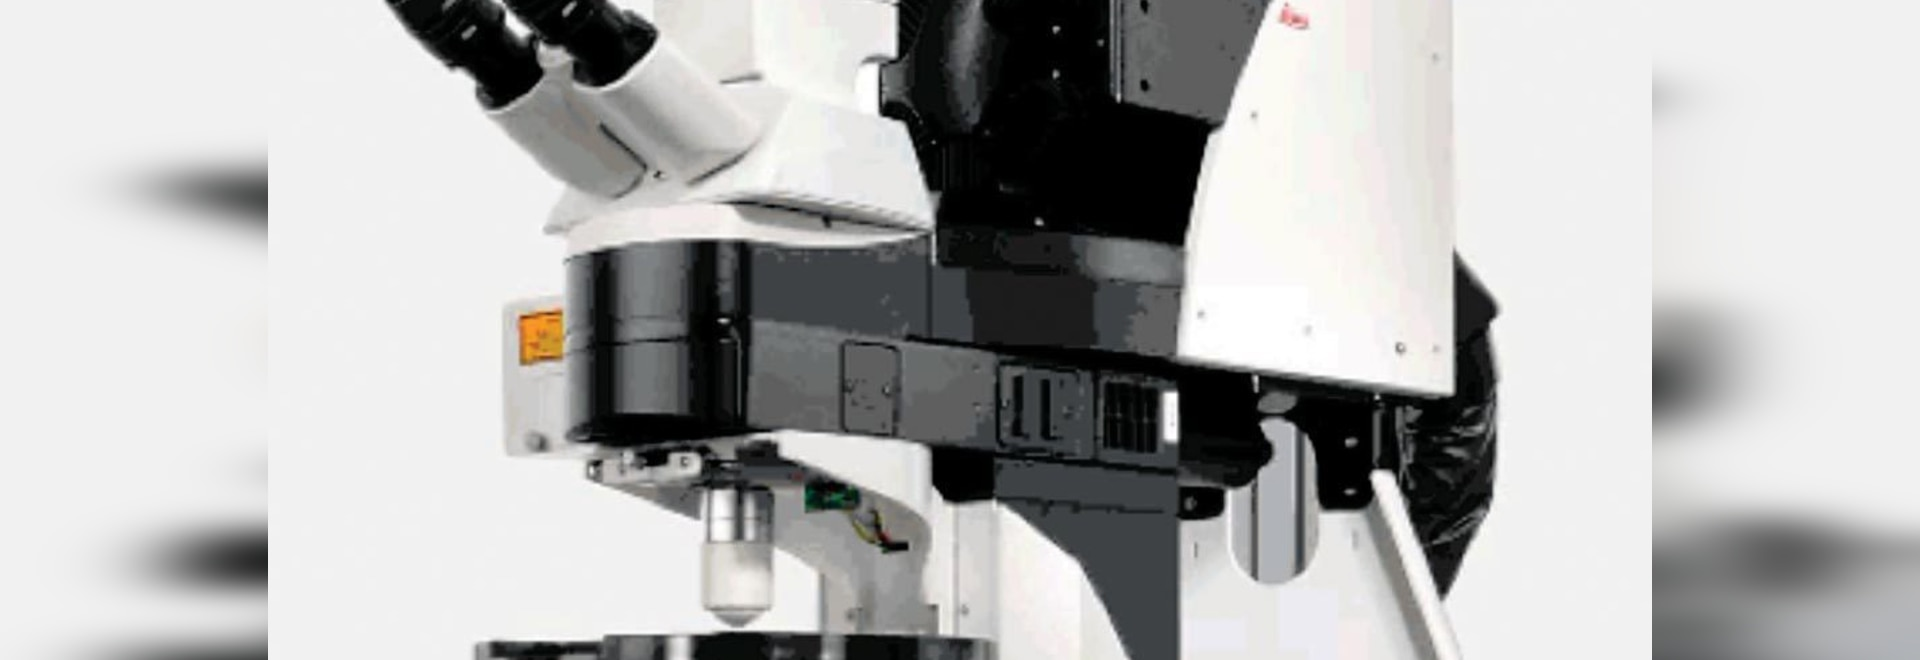 The Leica TCS SP5 Confocal microscope fully covers a broad range of requirements in confocal and multiphoton imaging with excellent overall performance. The system provides the full range of scan s...